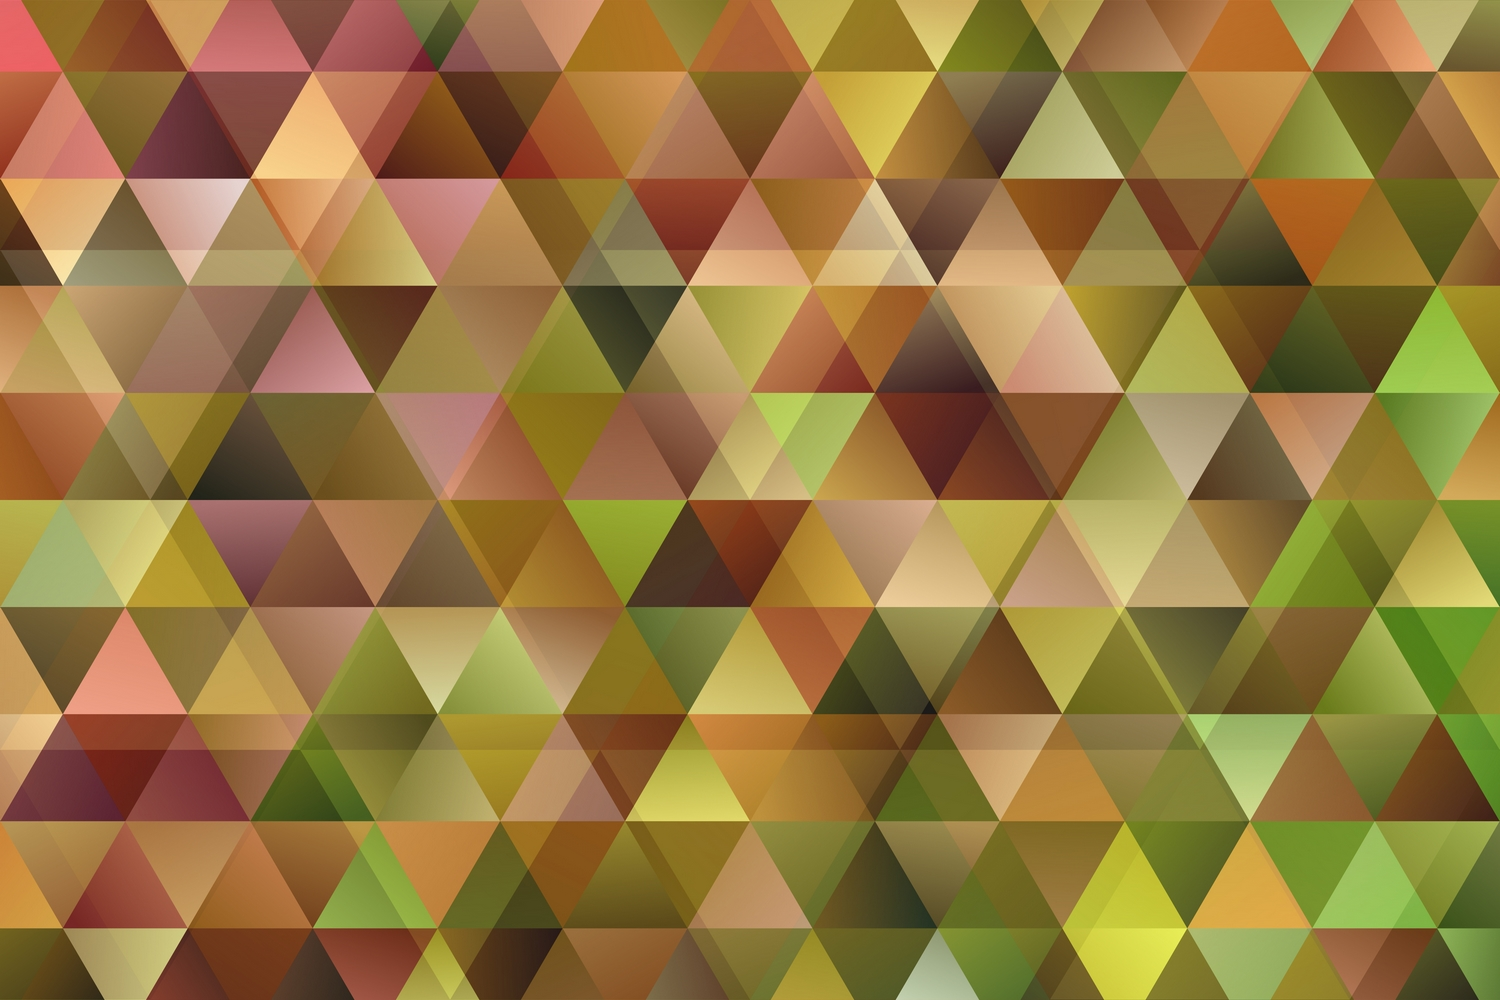 24 Gradient Polygon Backgrounds AI, EPS, JPG 5000x5000 example image 15